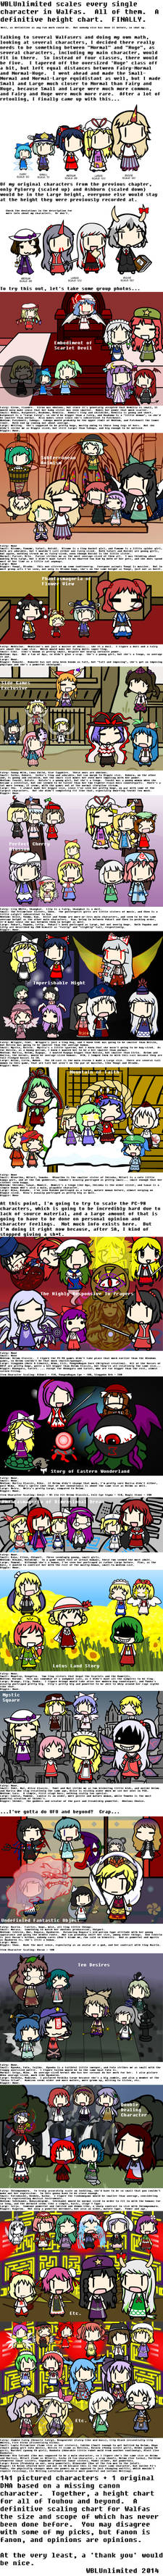 Scaling/Height chart for 140+ Touhou Characters